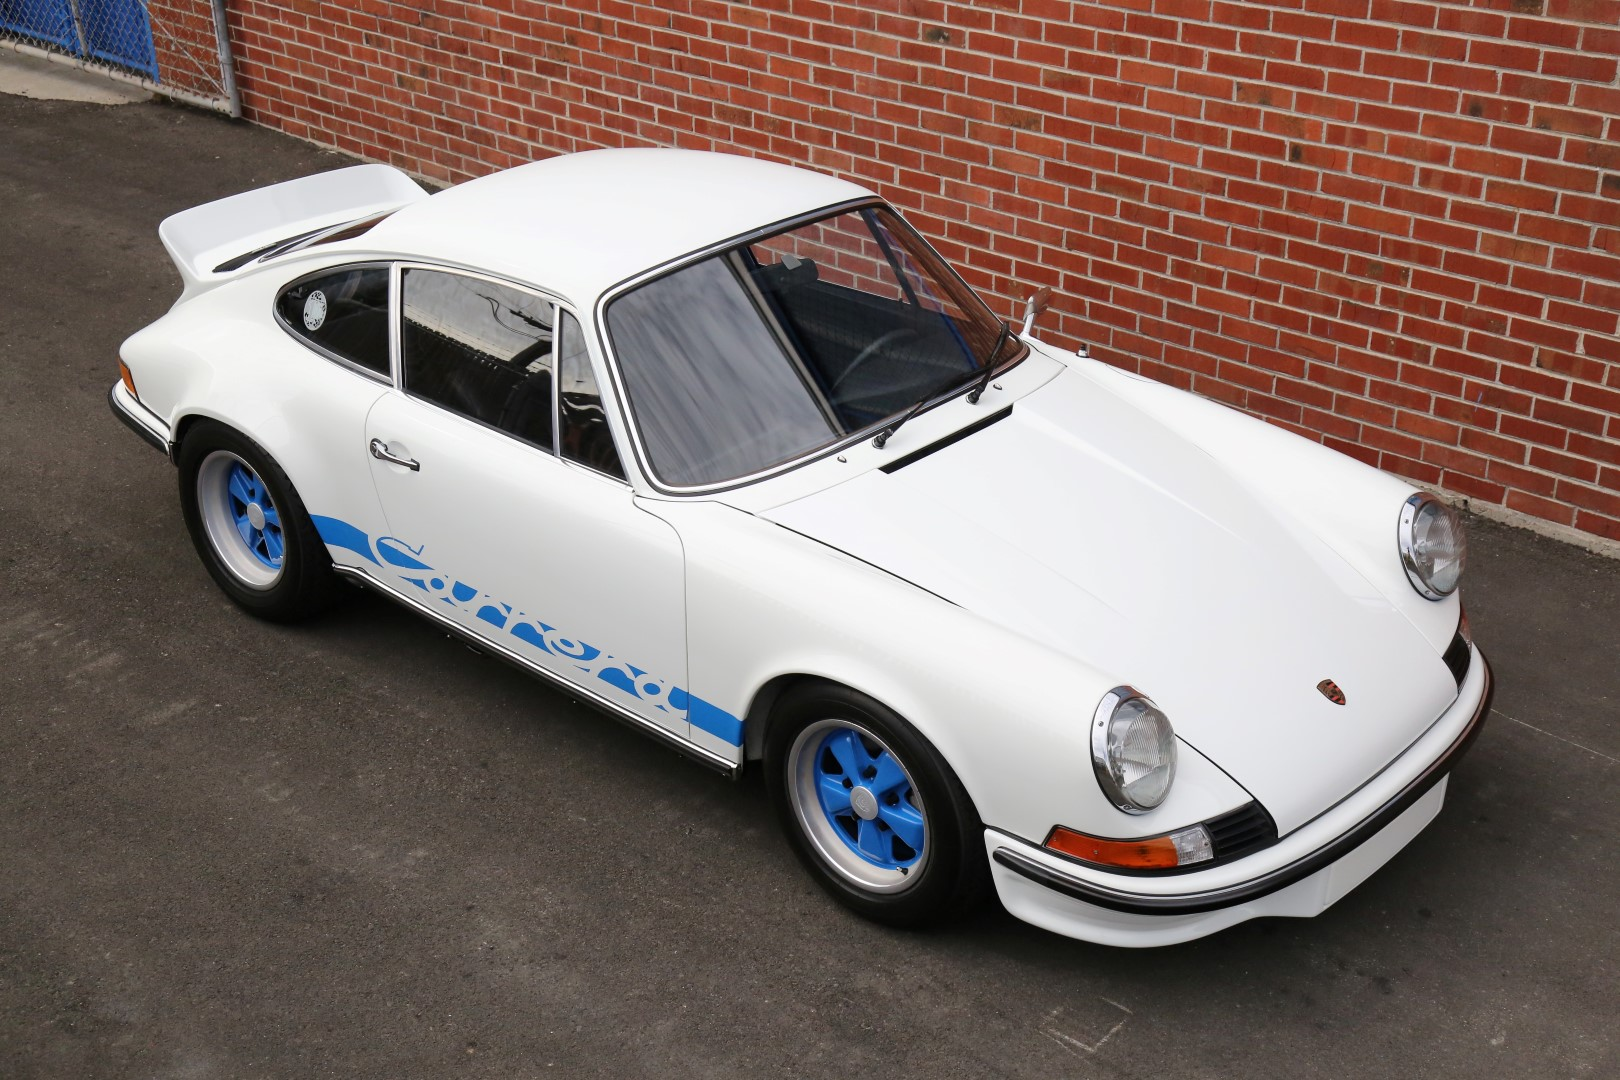 Porsche-911-Carrera-RS-2.7-1973-for-sale-1